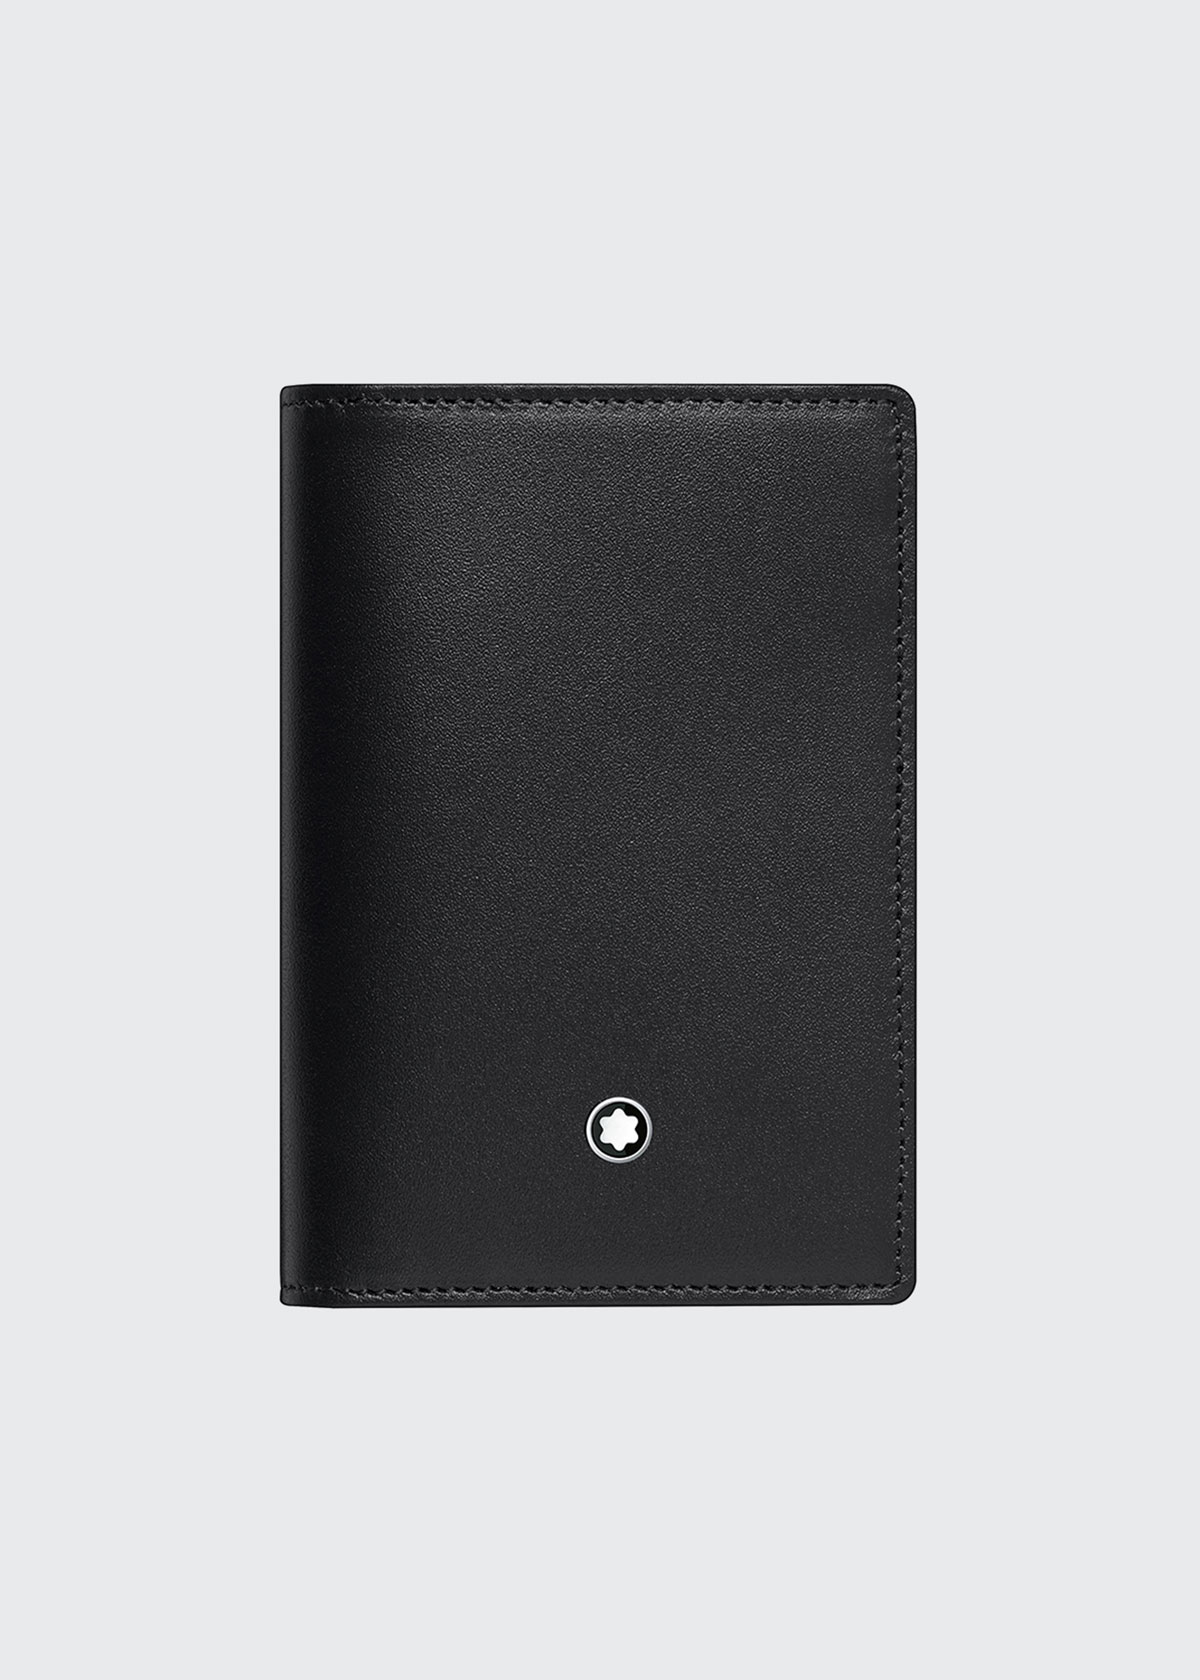 Montblanc MEN'S MEISTERSTUCK GUSSETED LEATHER BUSINESS CARD HOLDER